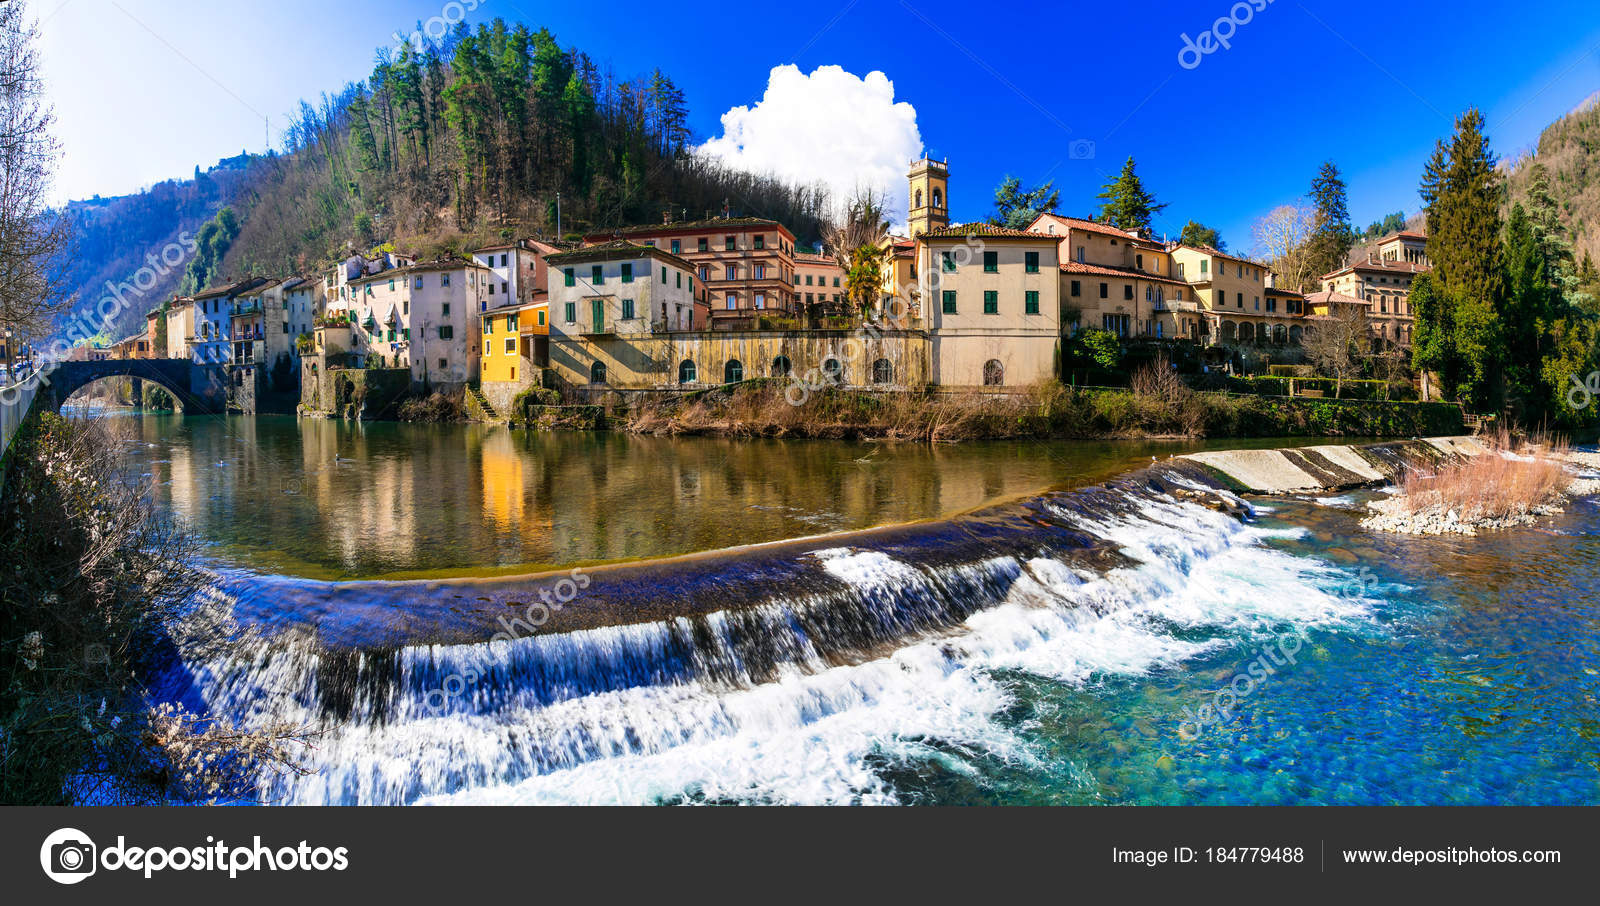 https://st3.depositphotos.com/1766887/18477/i/1600/depositphotos_184779488-stock-photo-traditional-villages-of-tuscany-bagni.jpg